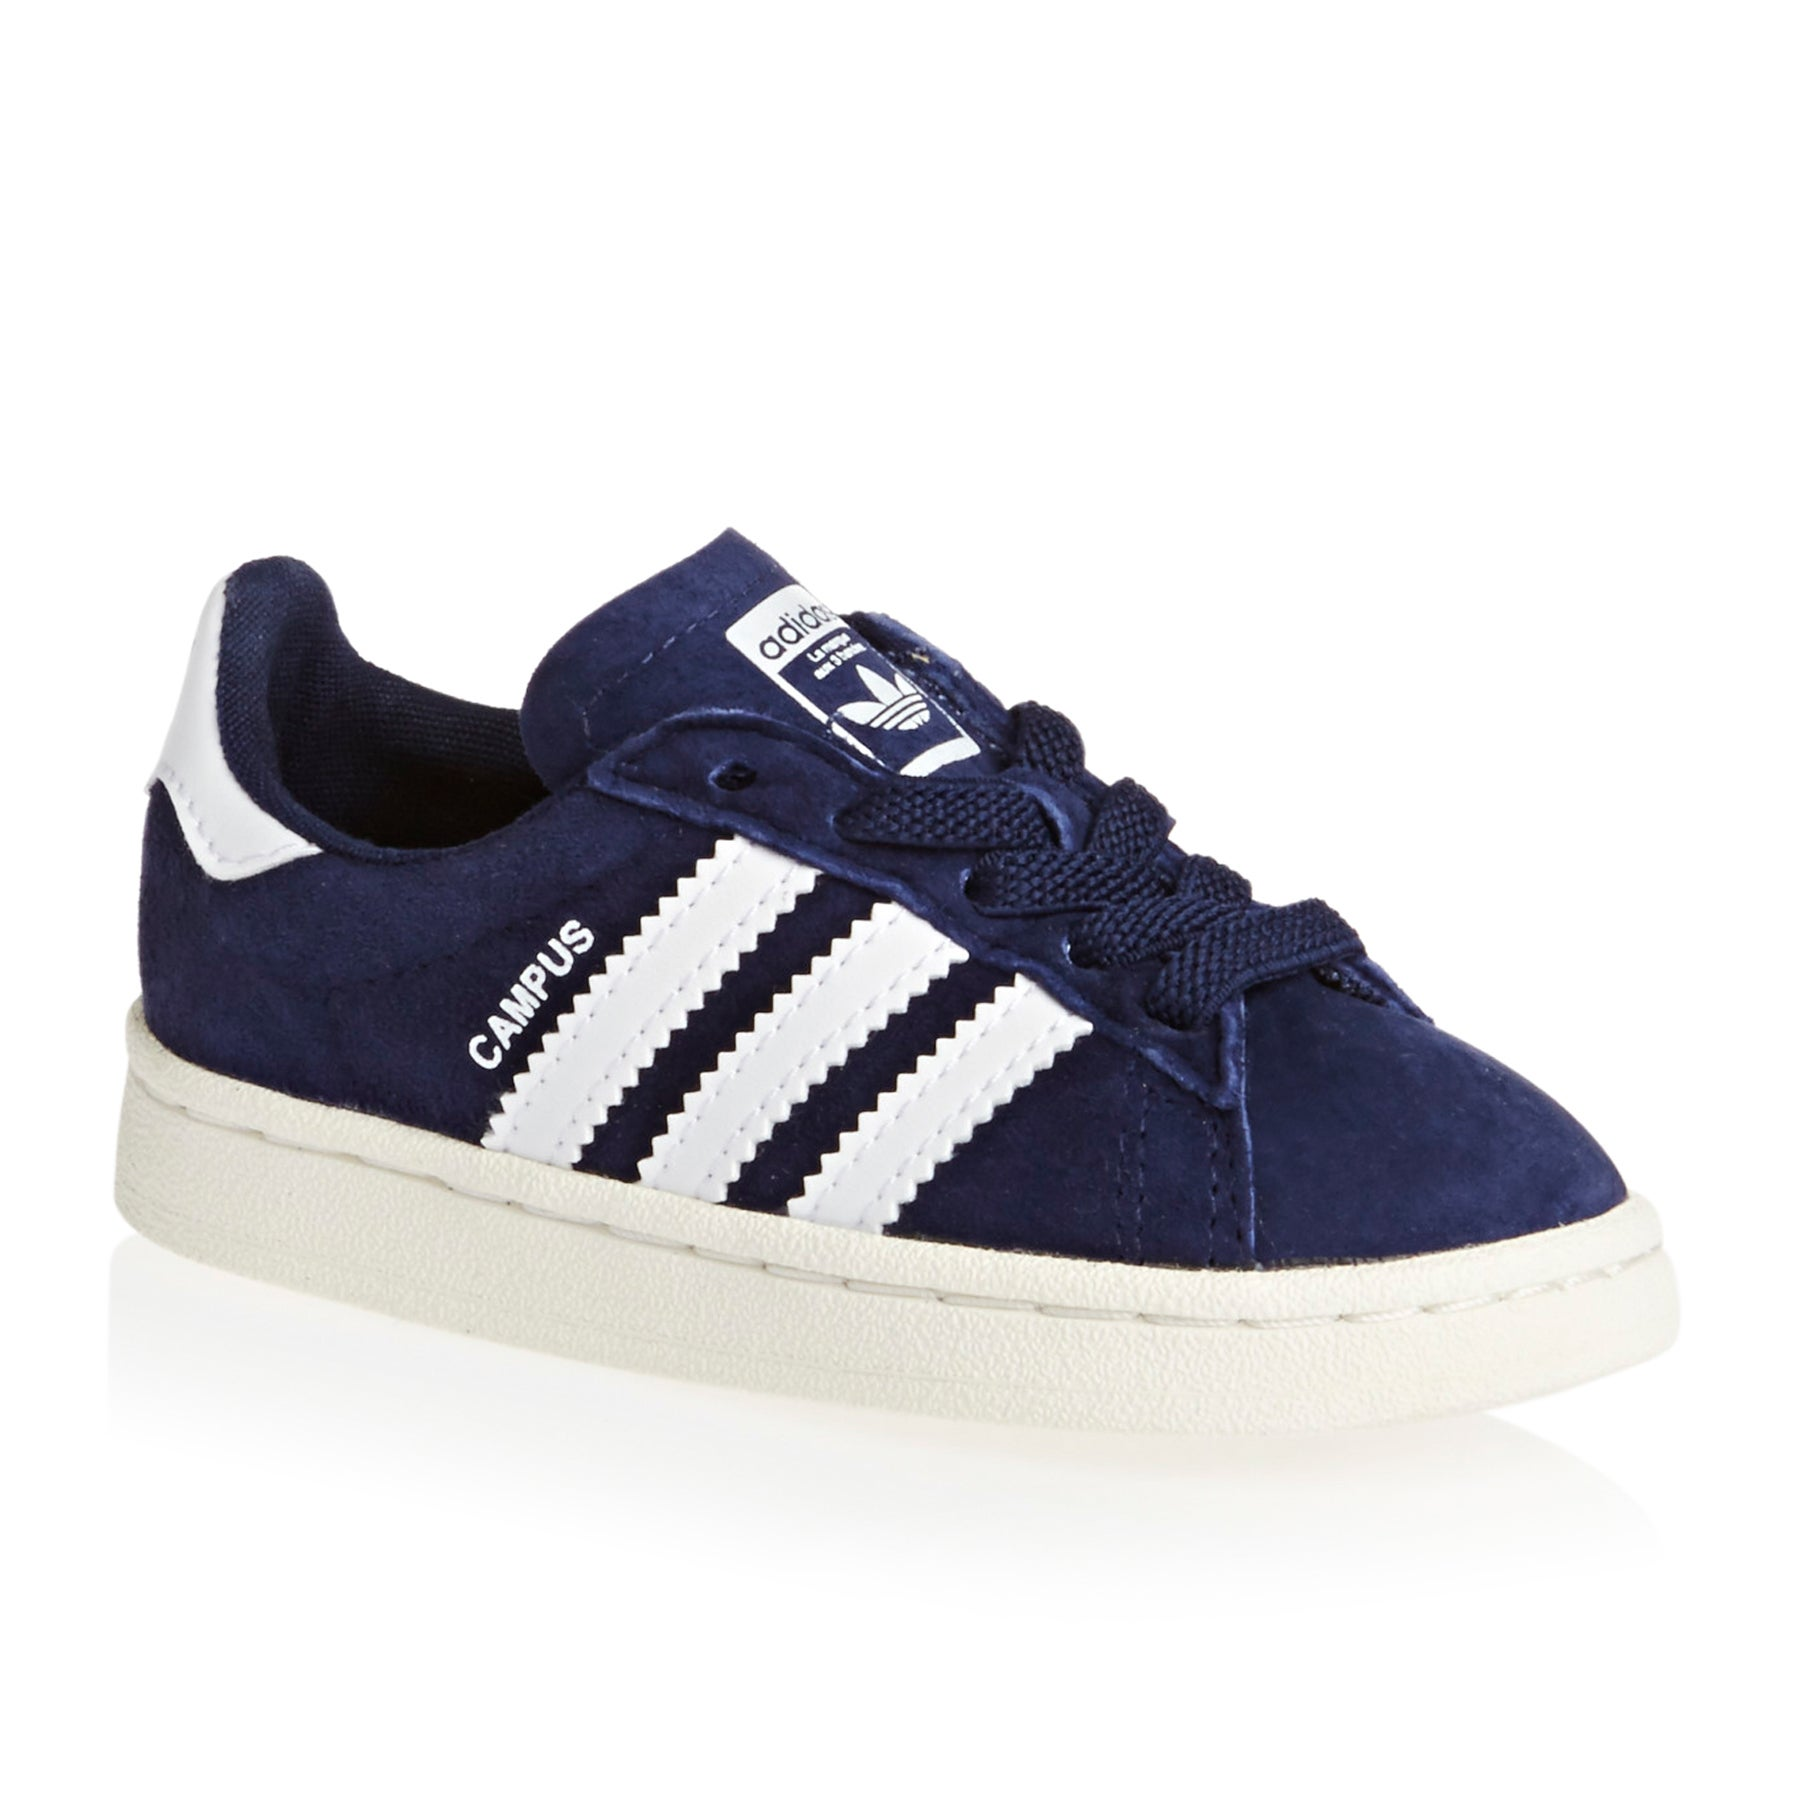 Adidas Originals Campus El Infant Boys Shoes - Dark Blue/White